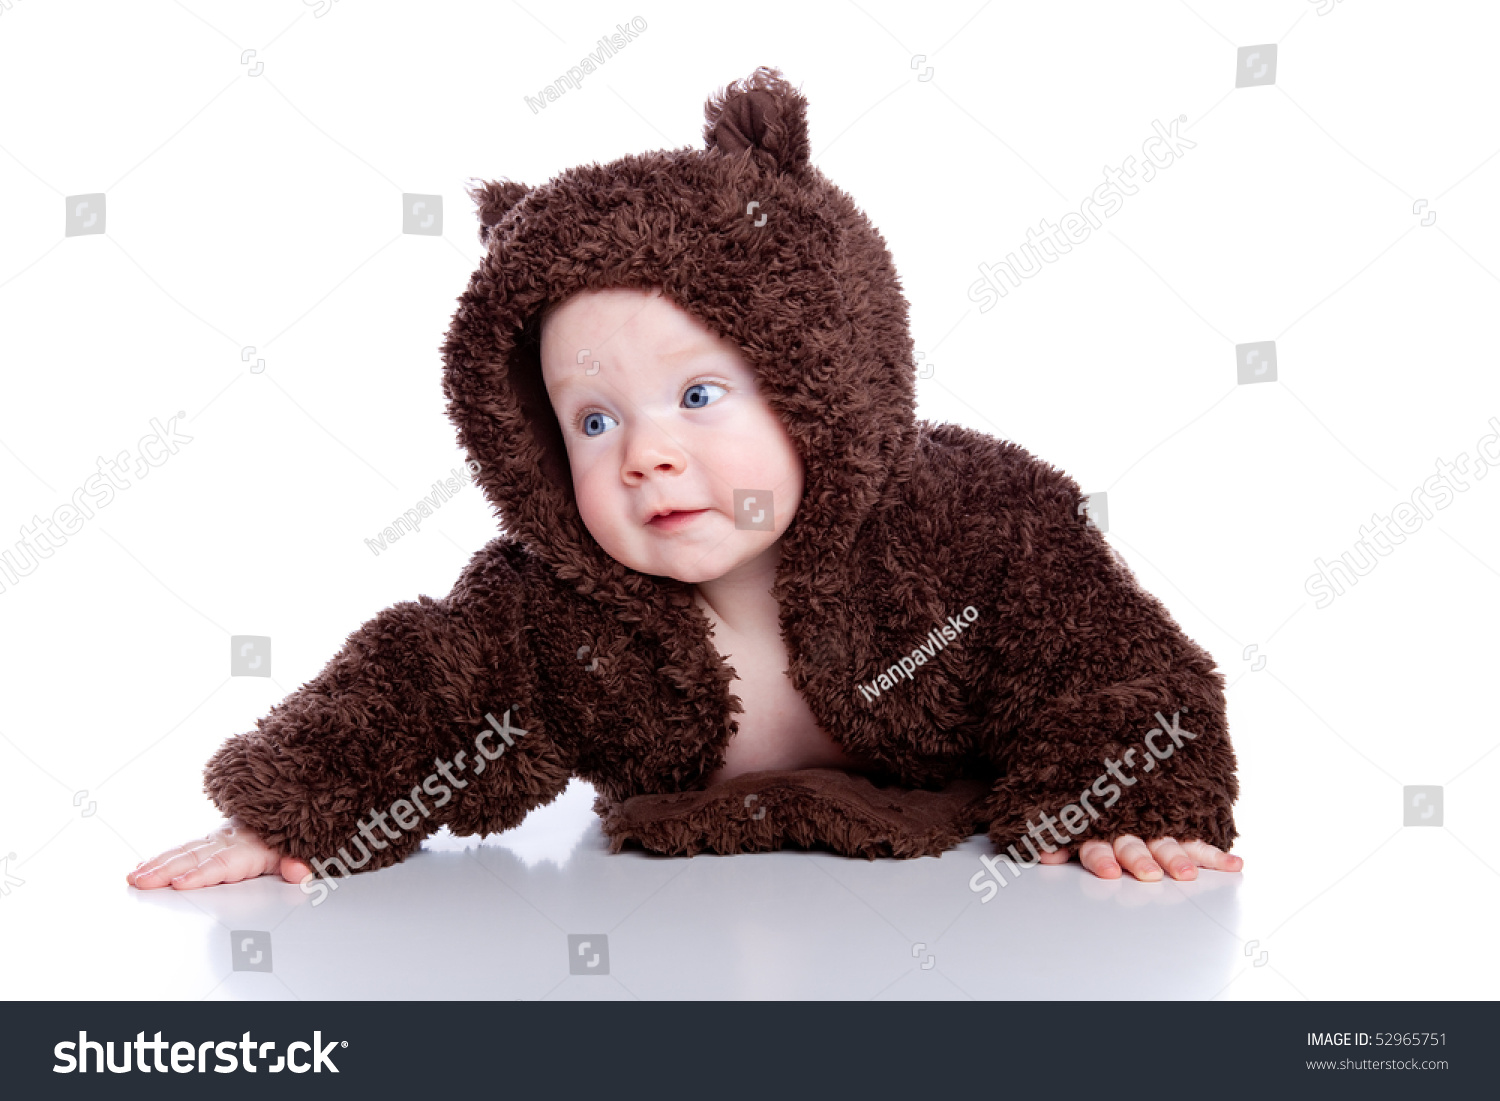 baby child in teddy-bear costume  sc 1 st  Shutterstock & Baby Child Teddybear Costume Stock Photo (Royalty Free) 52965751 ...